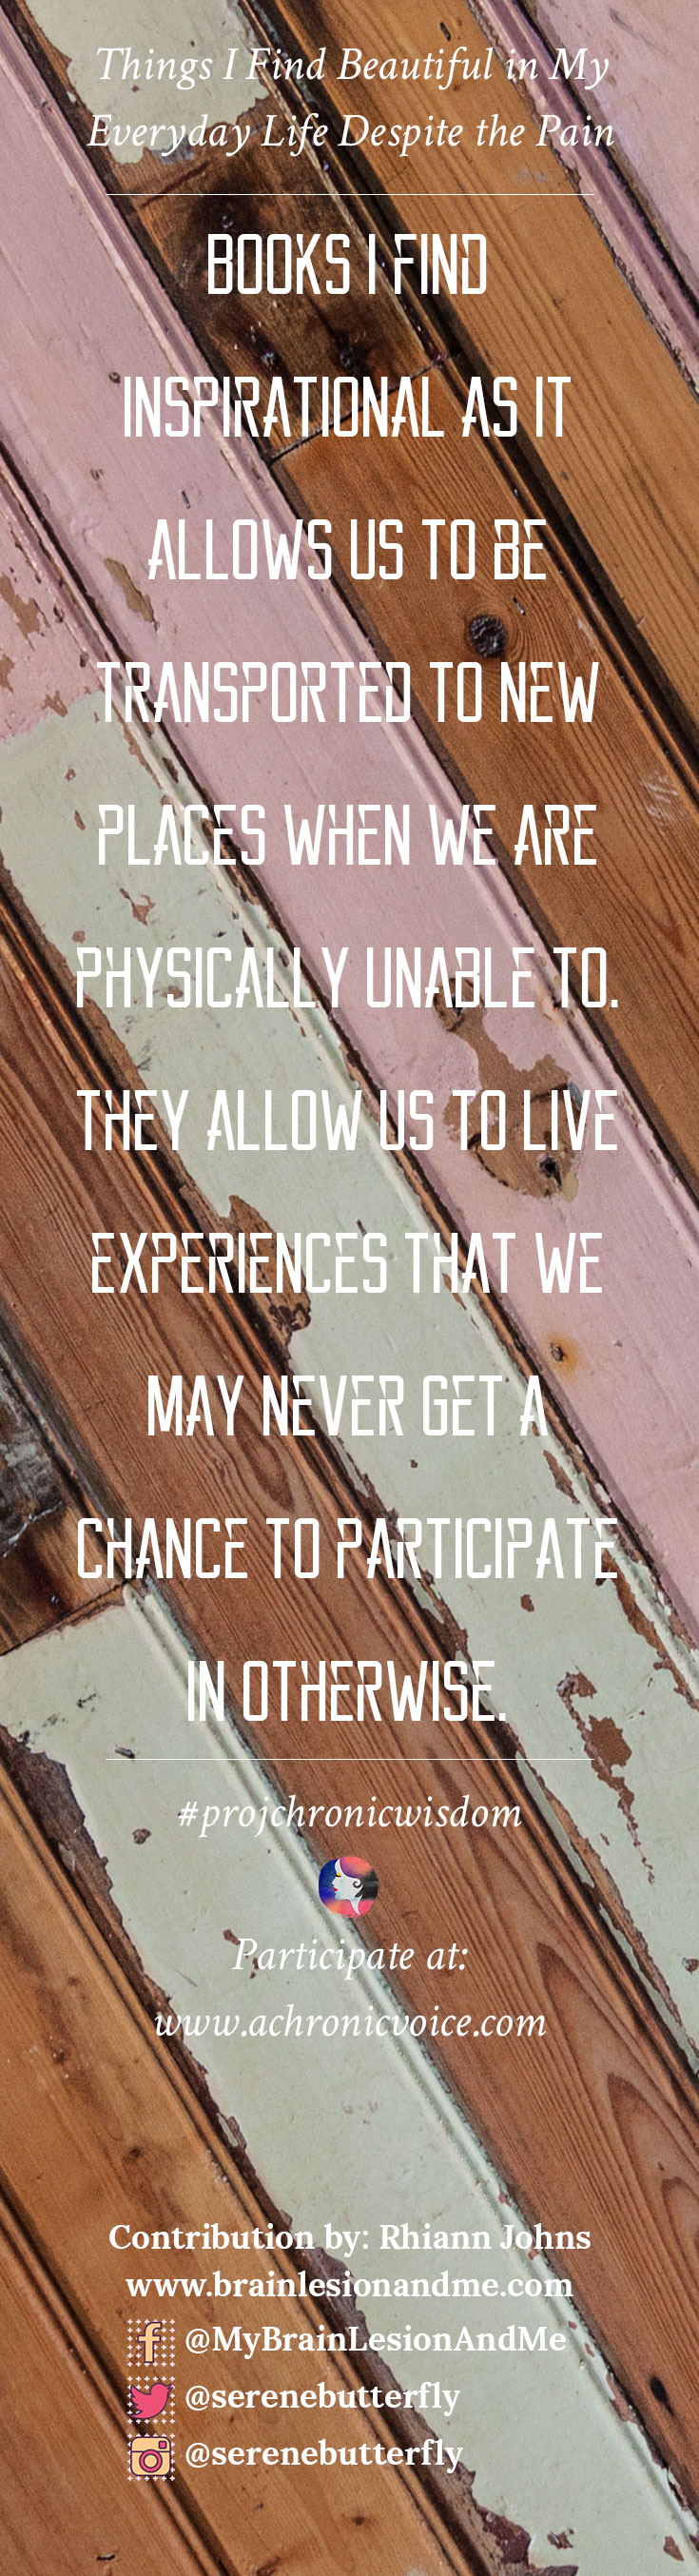 """""""Books I find inspirational as it allows us to be transported to new places when we are physically unable to. They allow us to live experiences that we may never get a chance to participate in otherwise."""" - Rhiann Johns 